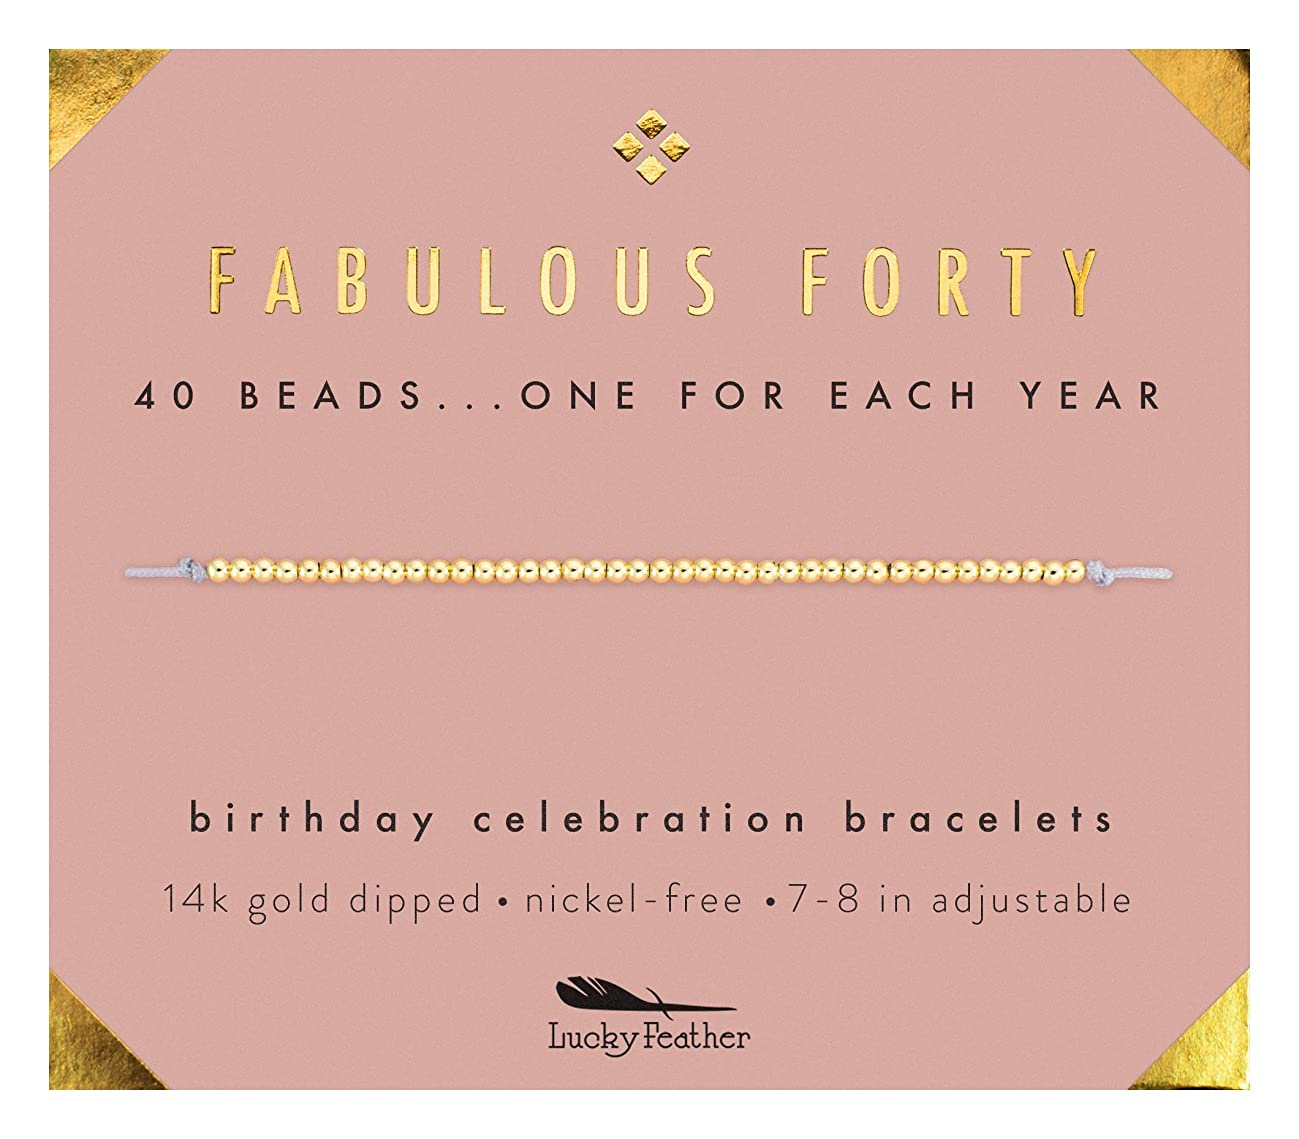 Lucky Feather 40th Birthday Gifts for Women, 14K Gold Dipped Beads Bracelet on Adjustable 7